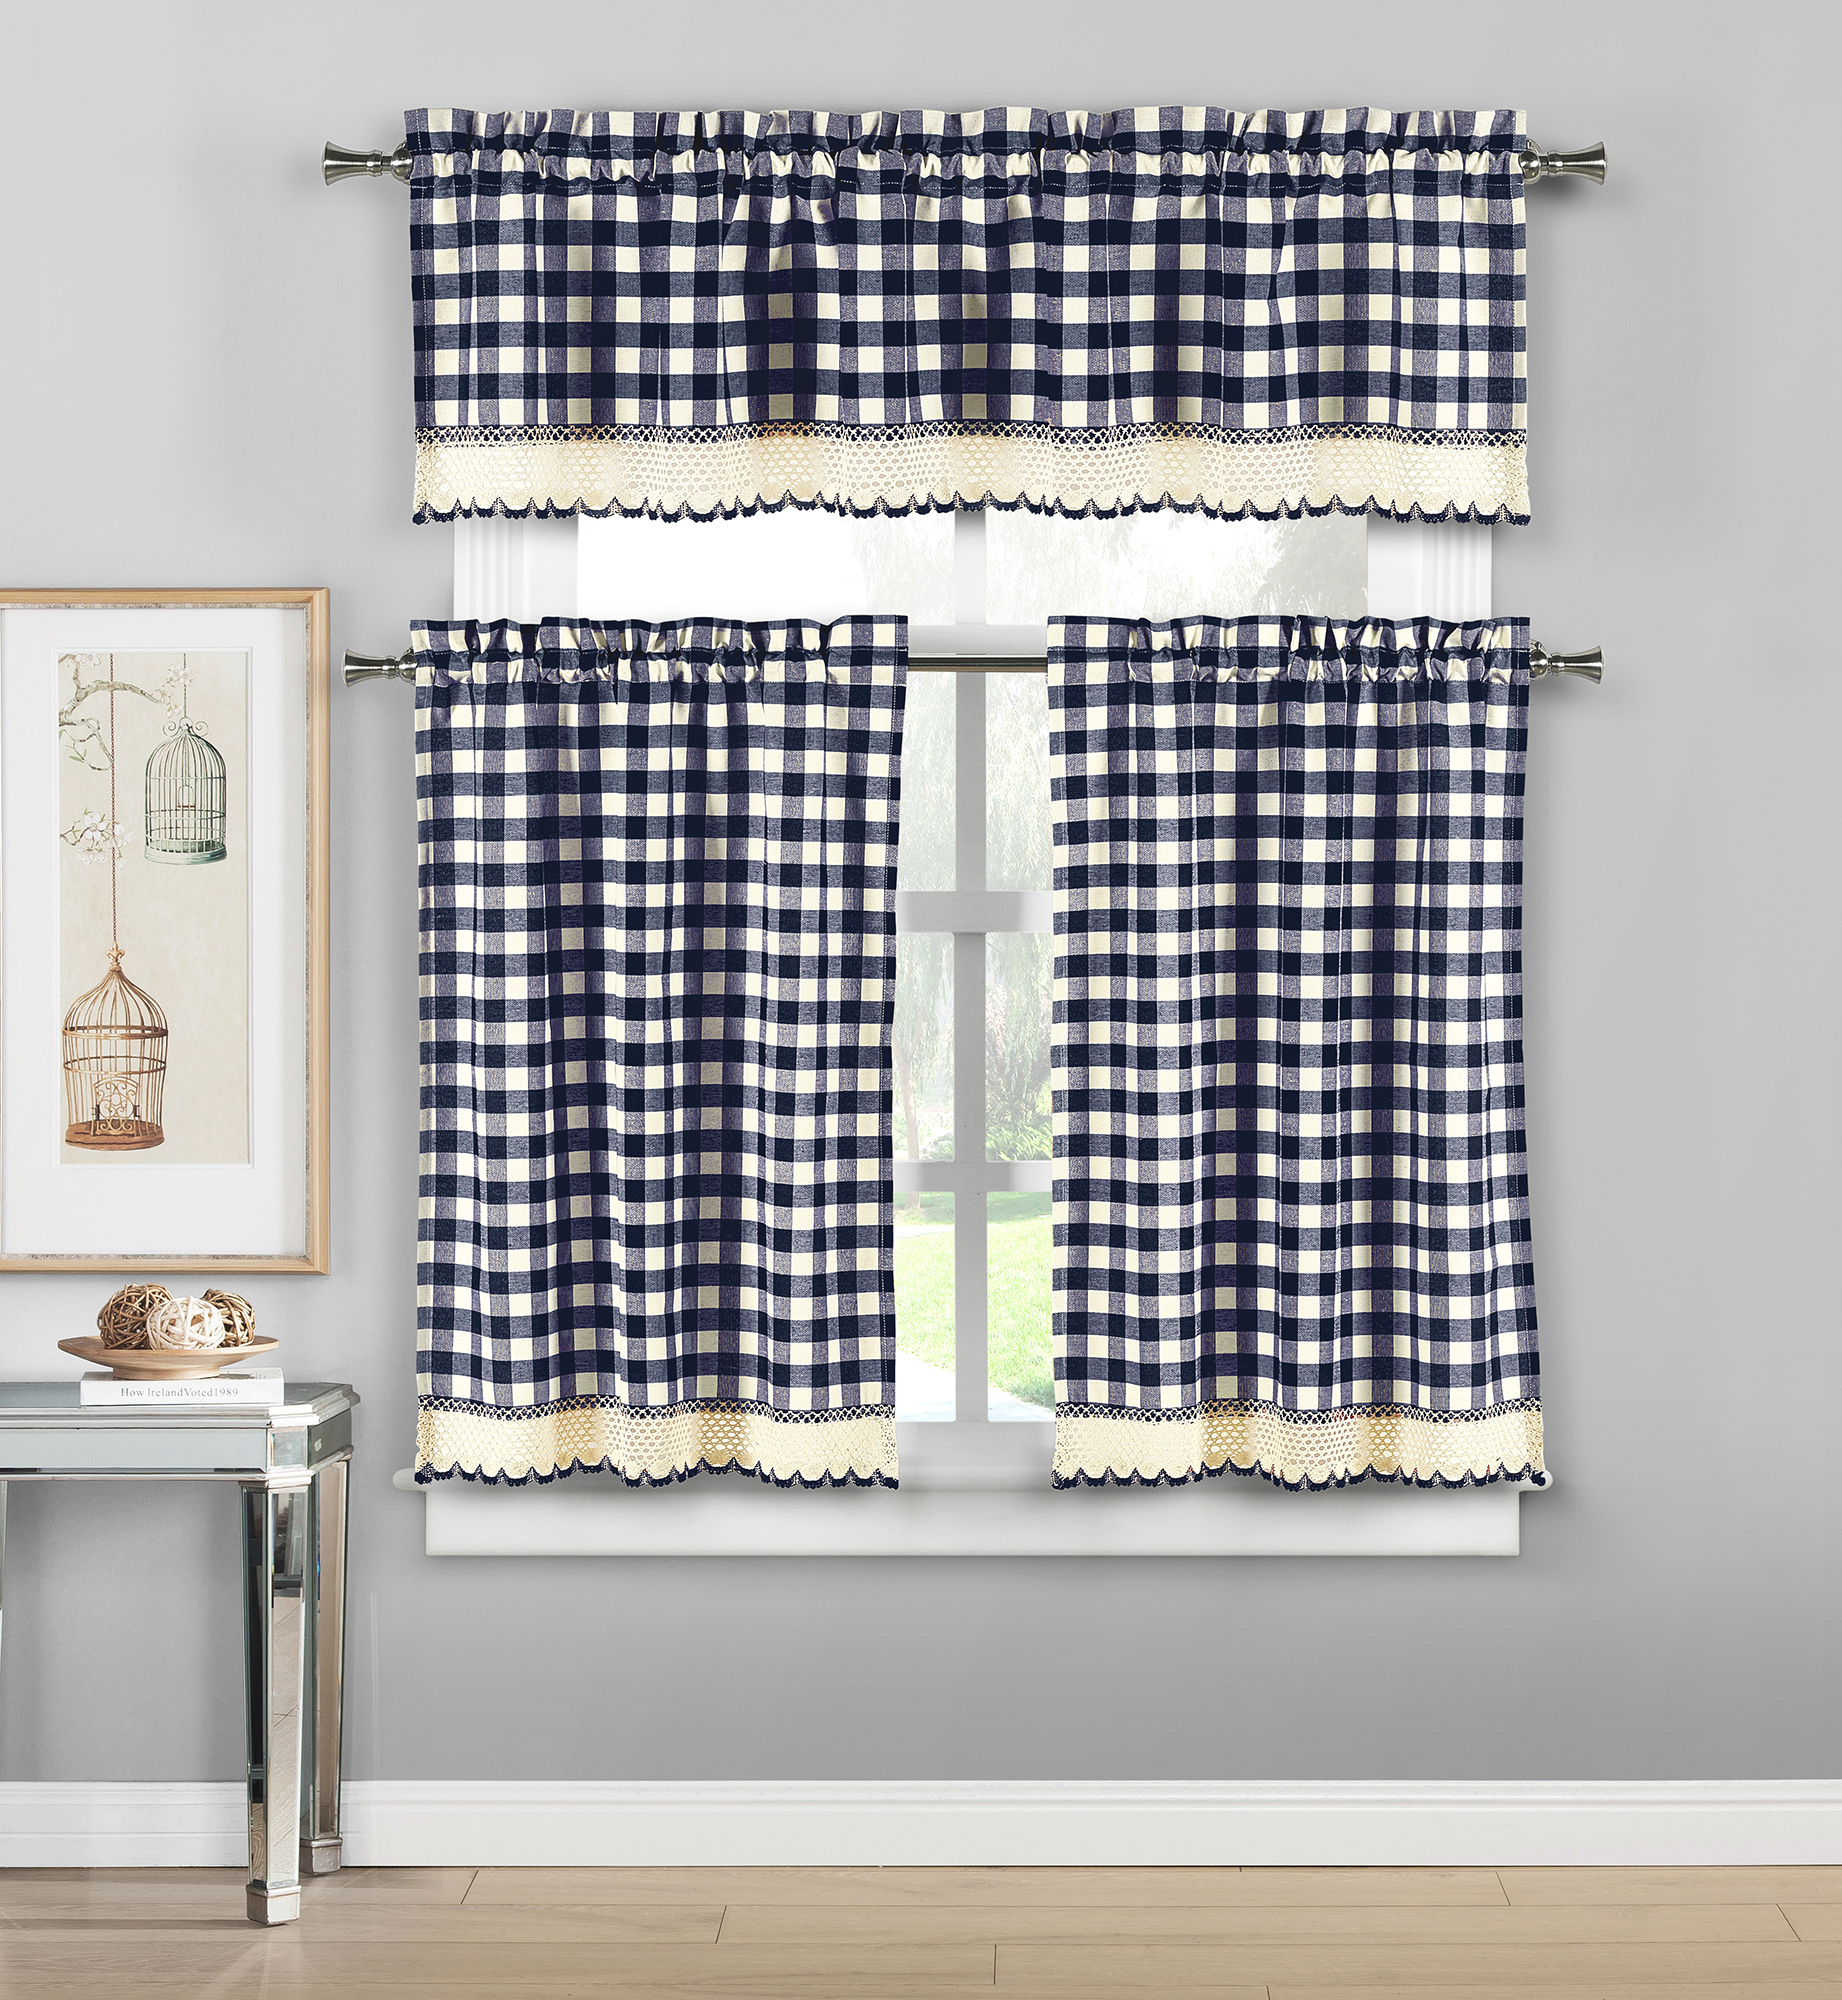 Details About Plaid Checkered Crochet Cotton Blend 3Pc Window Curtain Kitchen Tier & Valance With Cotton Blend Grey Kitchen Curtain Tiers (View 6 of 20)